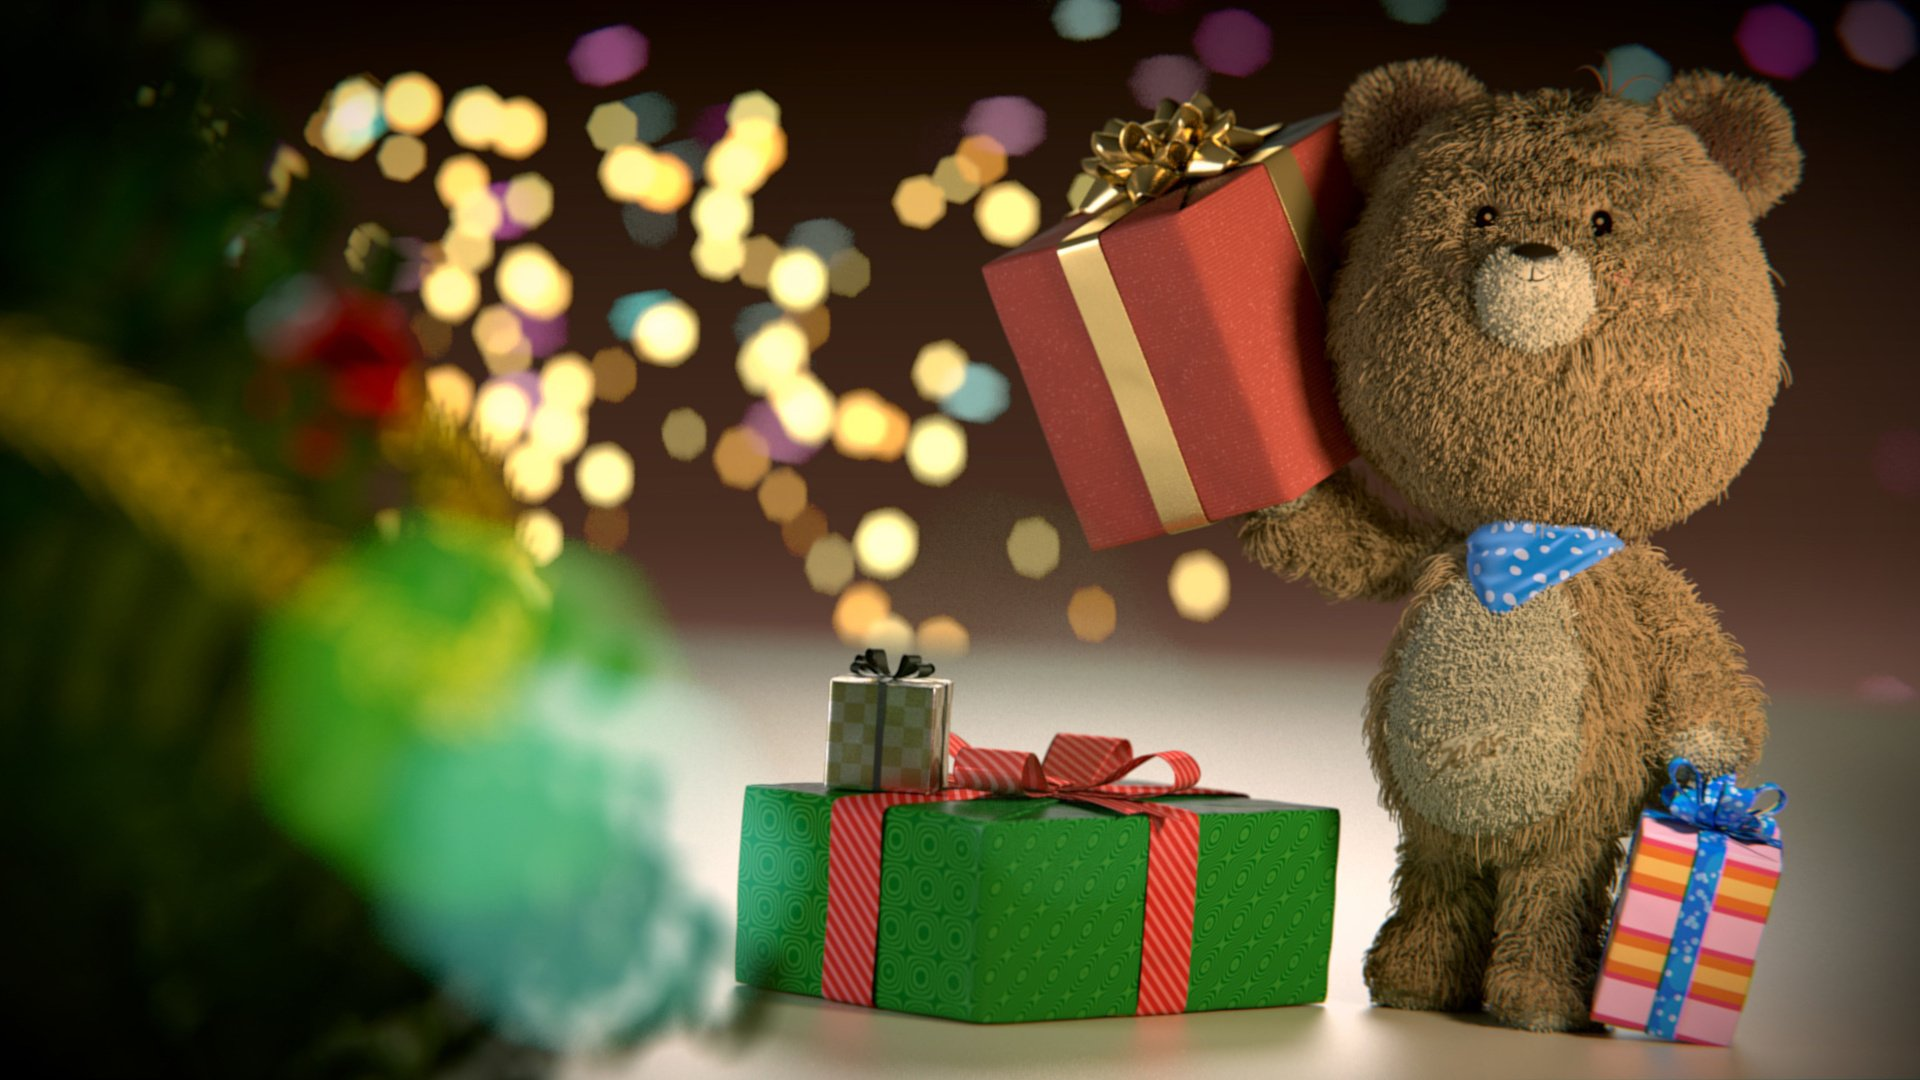 Christmas Teddy Bear Wallpaper: Christmas Gift Teddy Bear Beautiful Moods Wallpaper